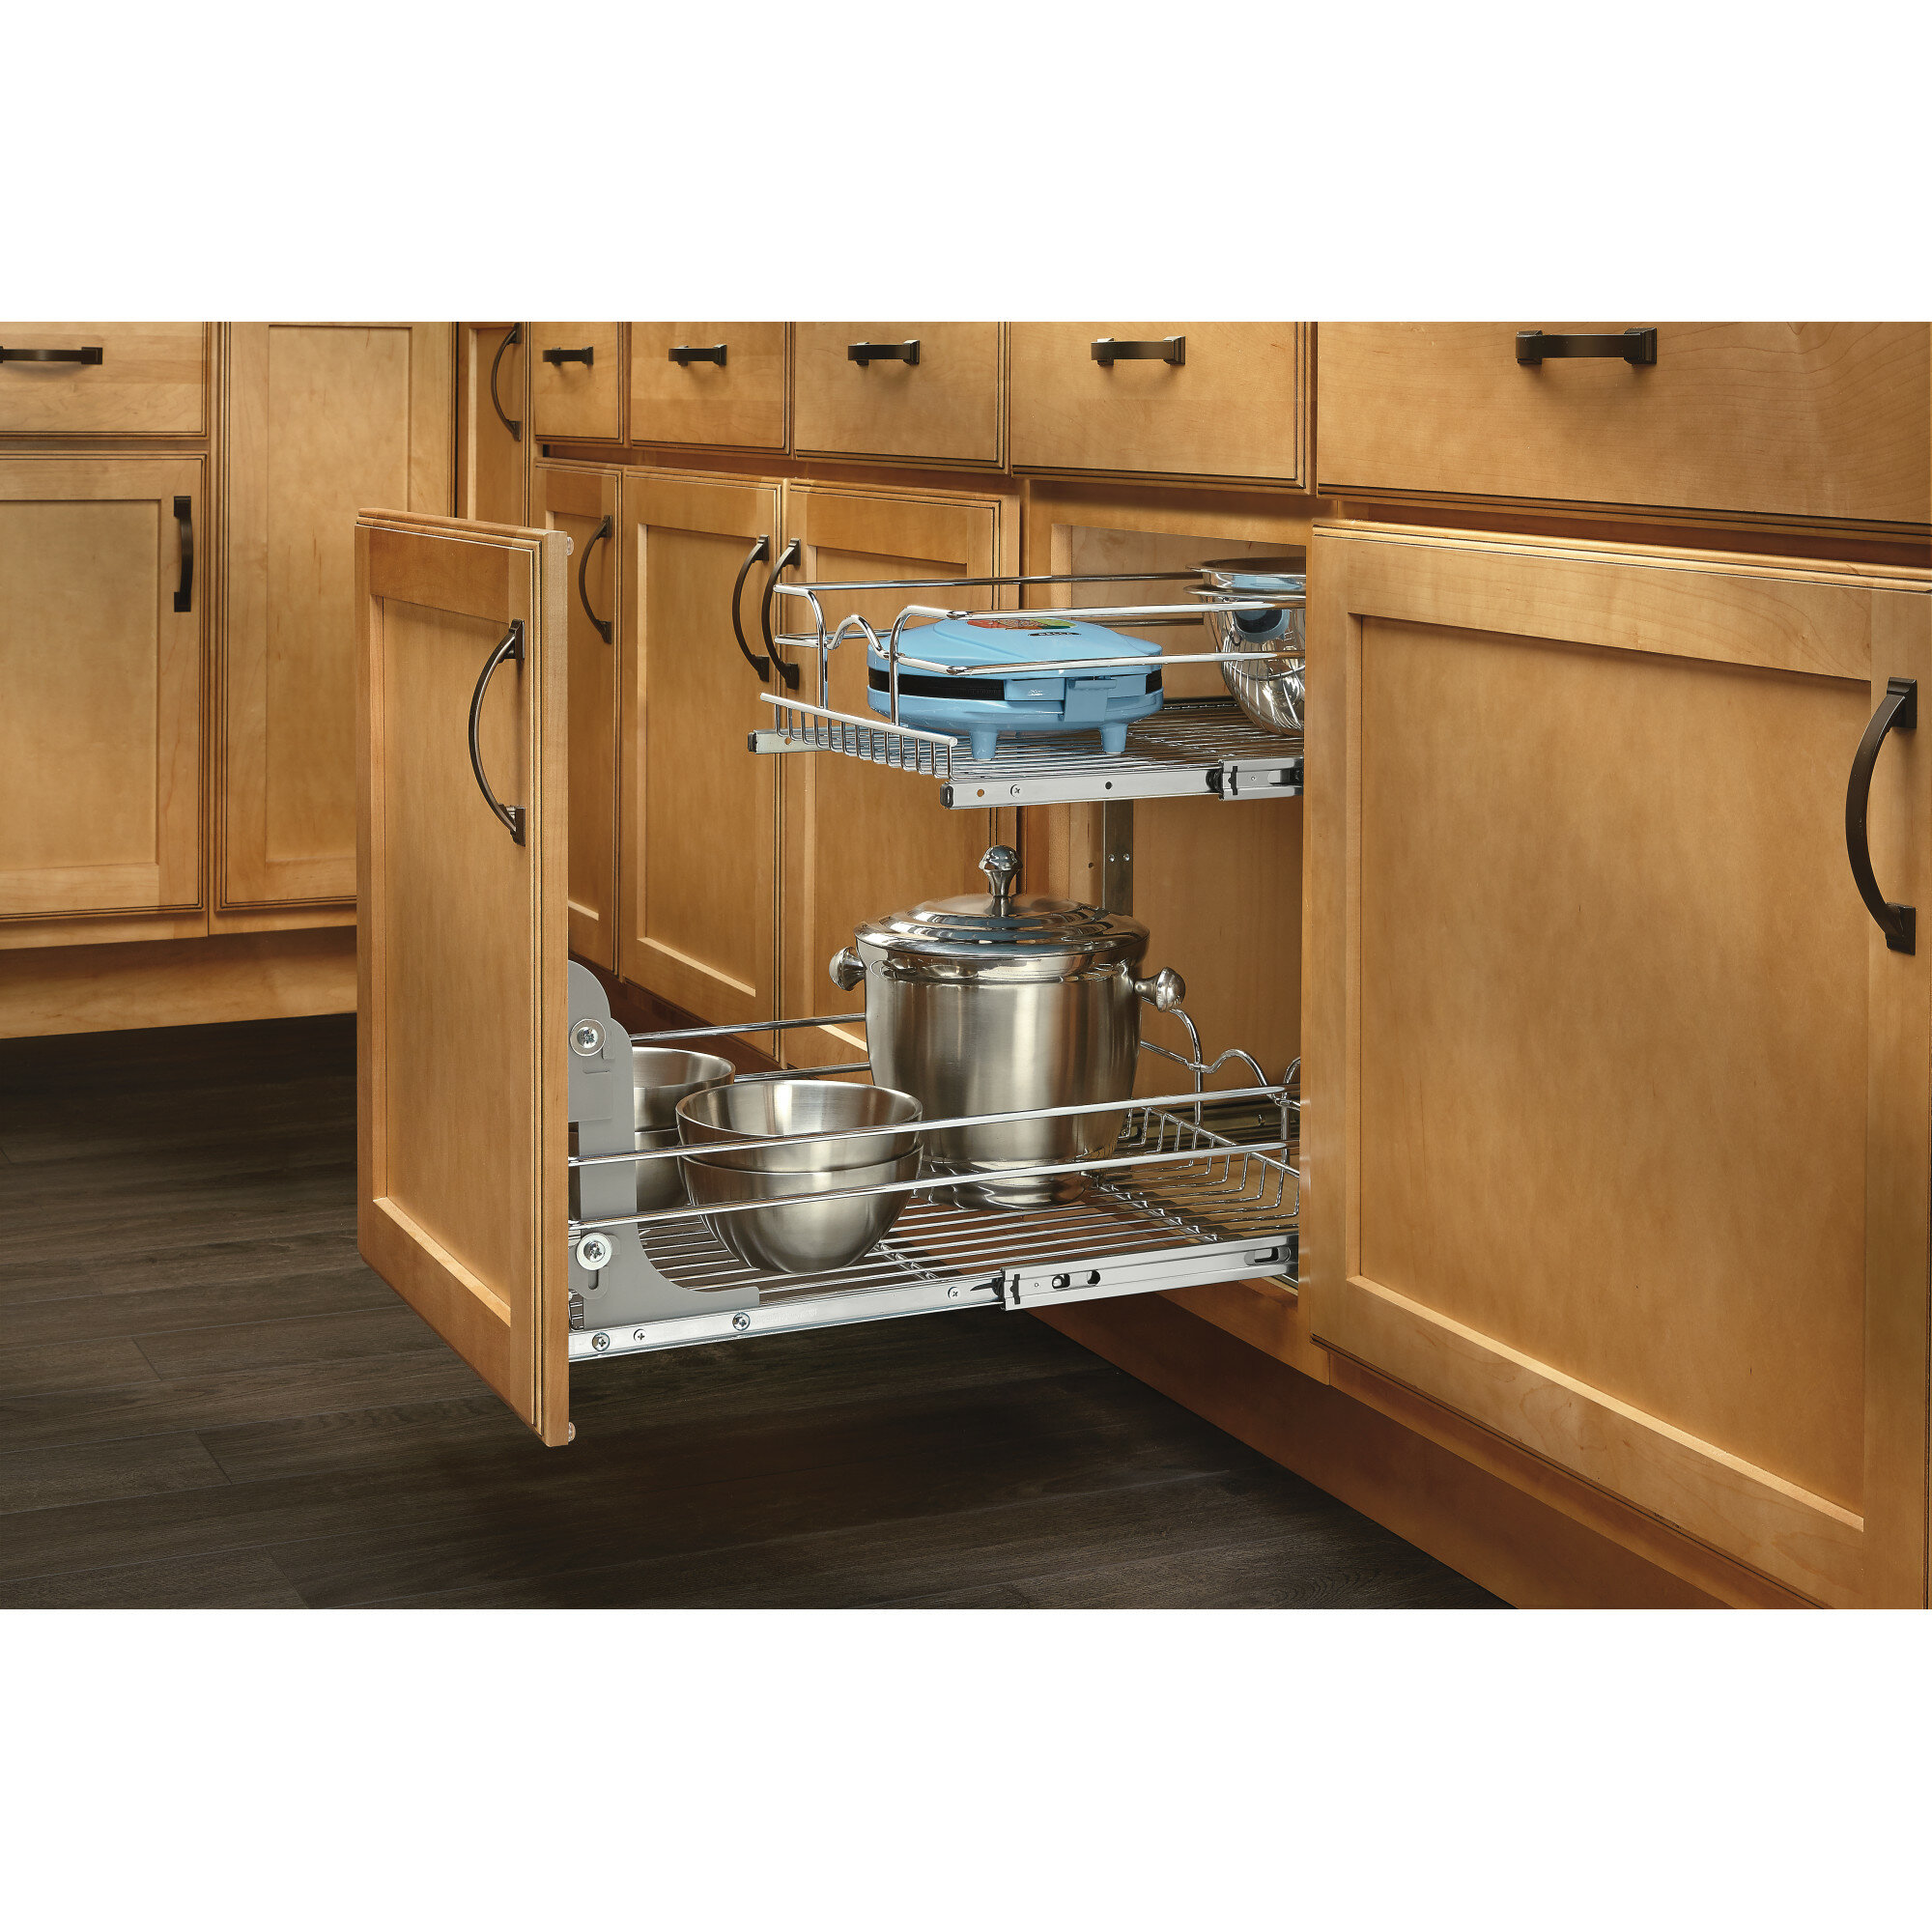 Kitchen Cabinet Pull Out Shelf: Rev-A-Shelf 2 Tier Pull Out Drawer